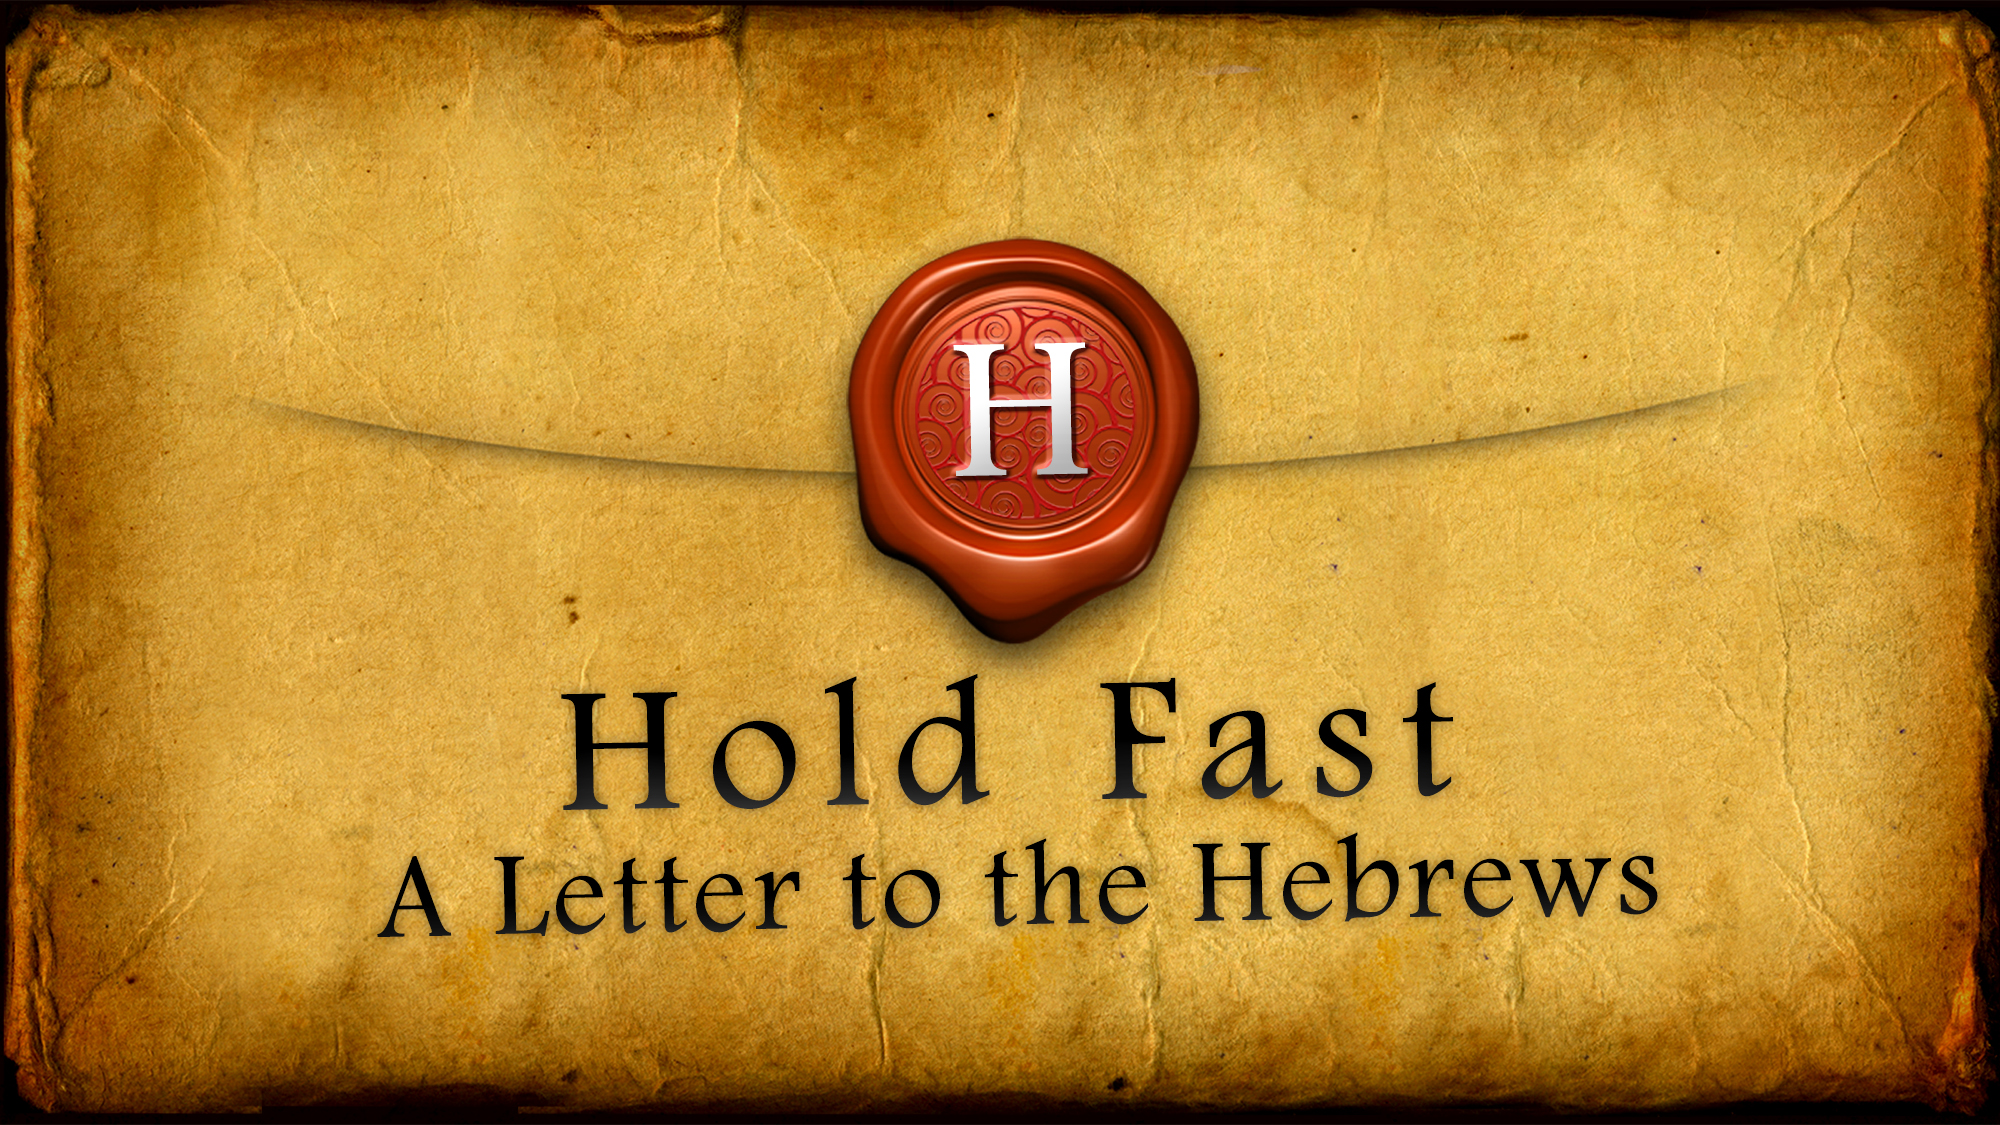 Hold Fast: A Letter to the Hebrews